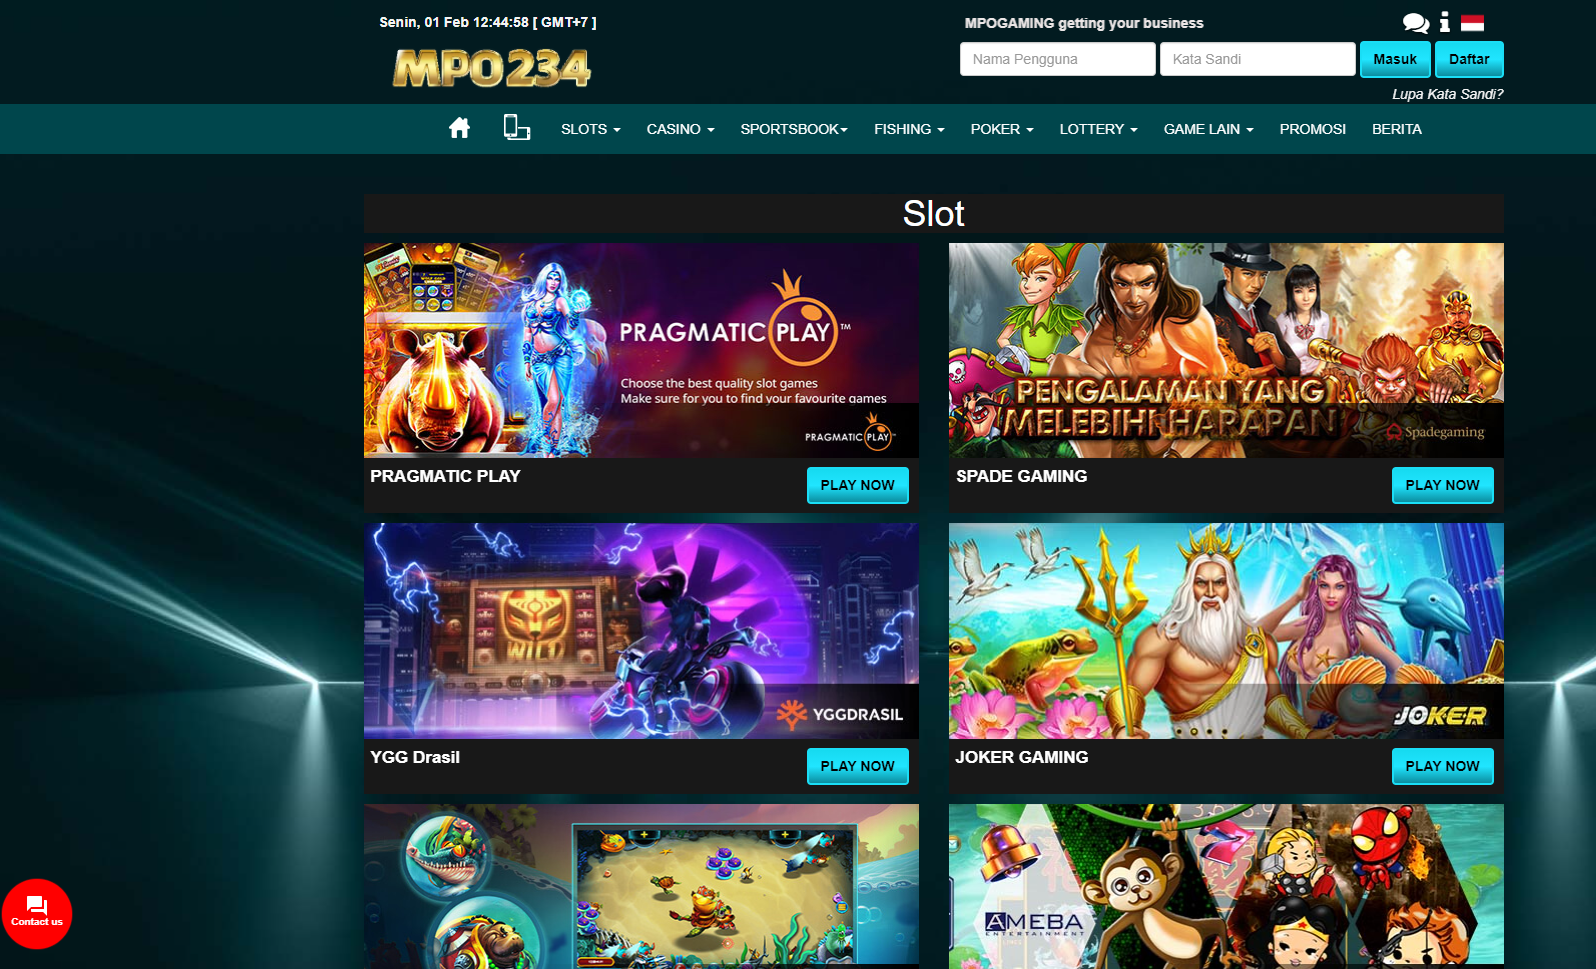 Mpo234 Situs Judi Slot Online Joker 123 Gaming Deposit Pulsa Indonesia Profile Full Press Coverage Forum